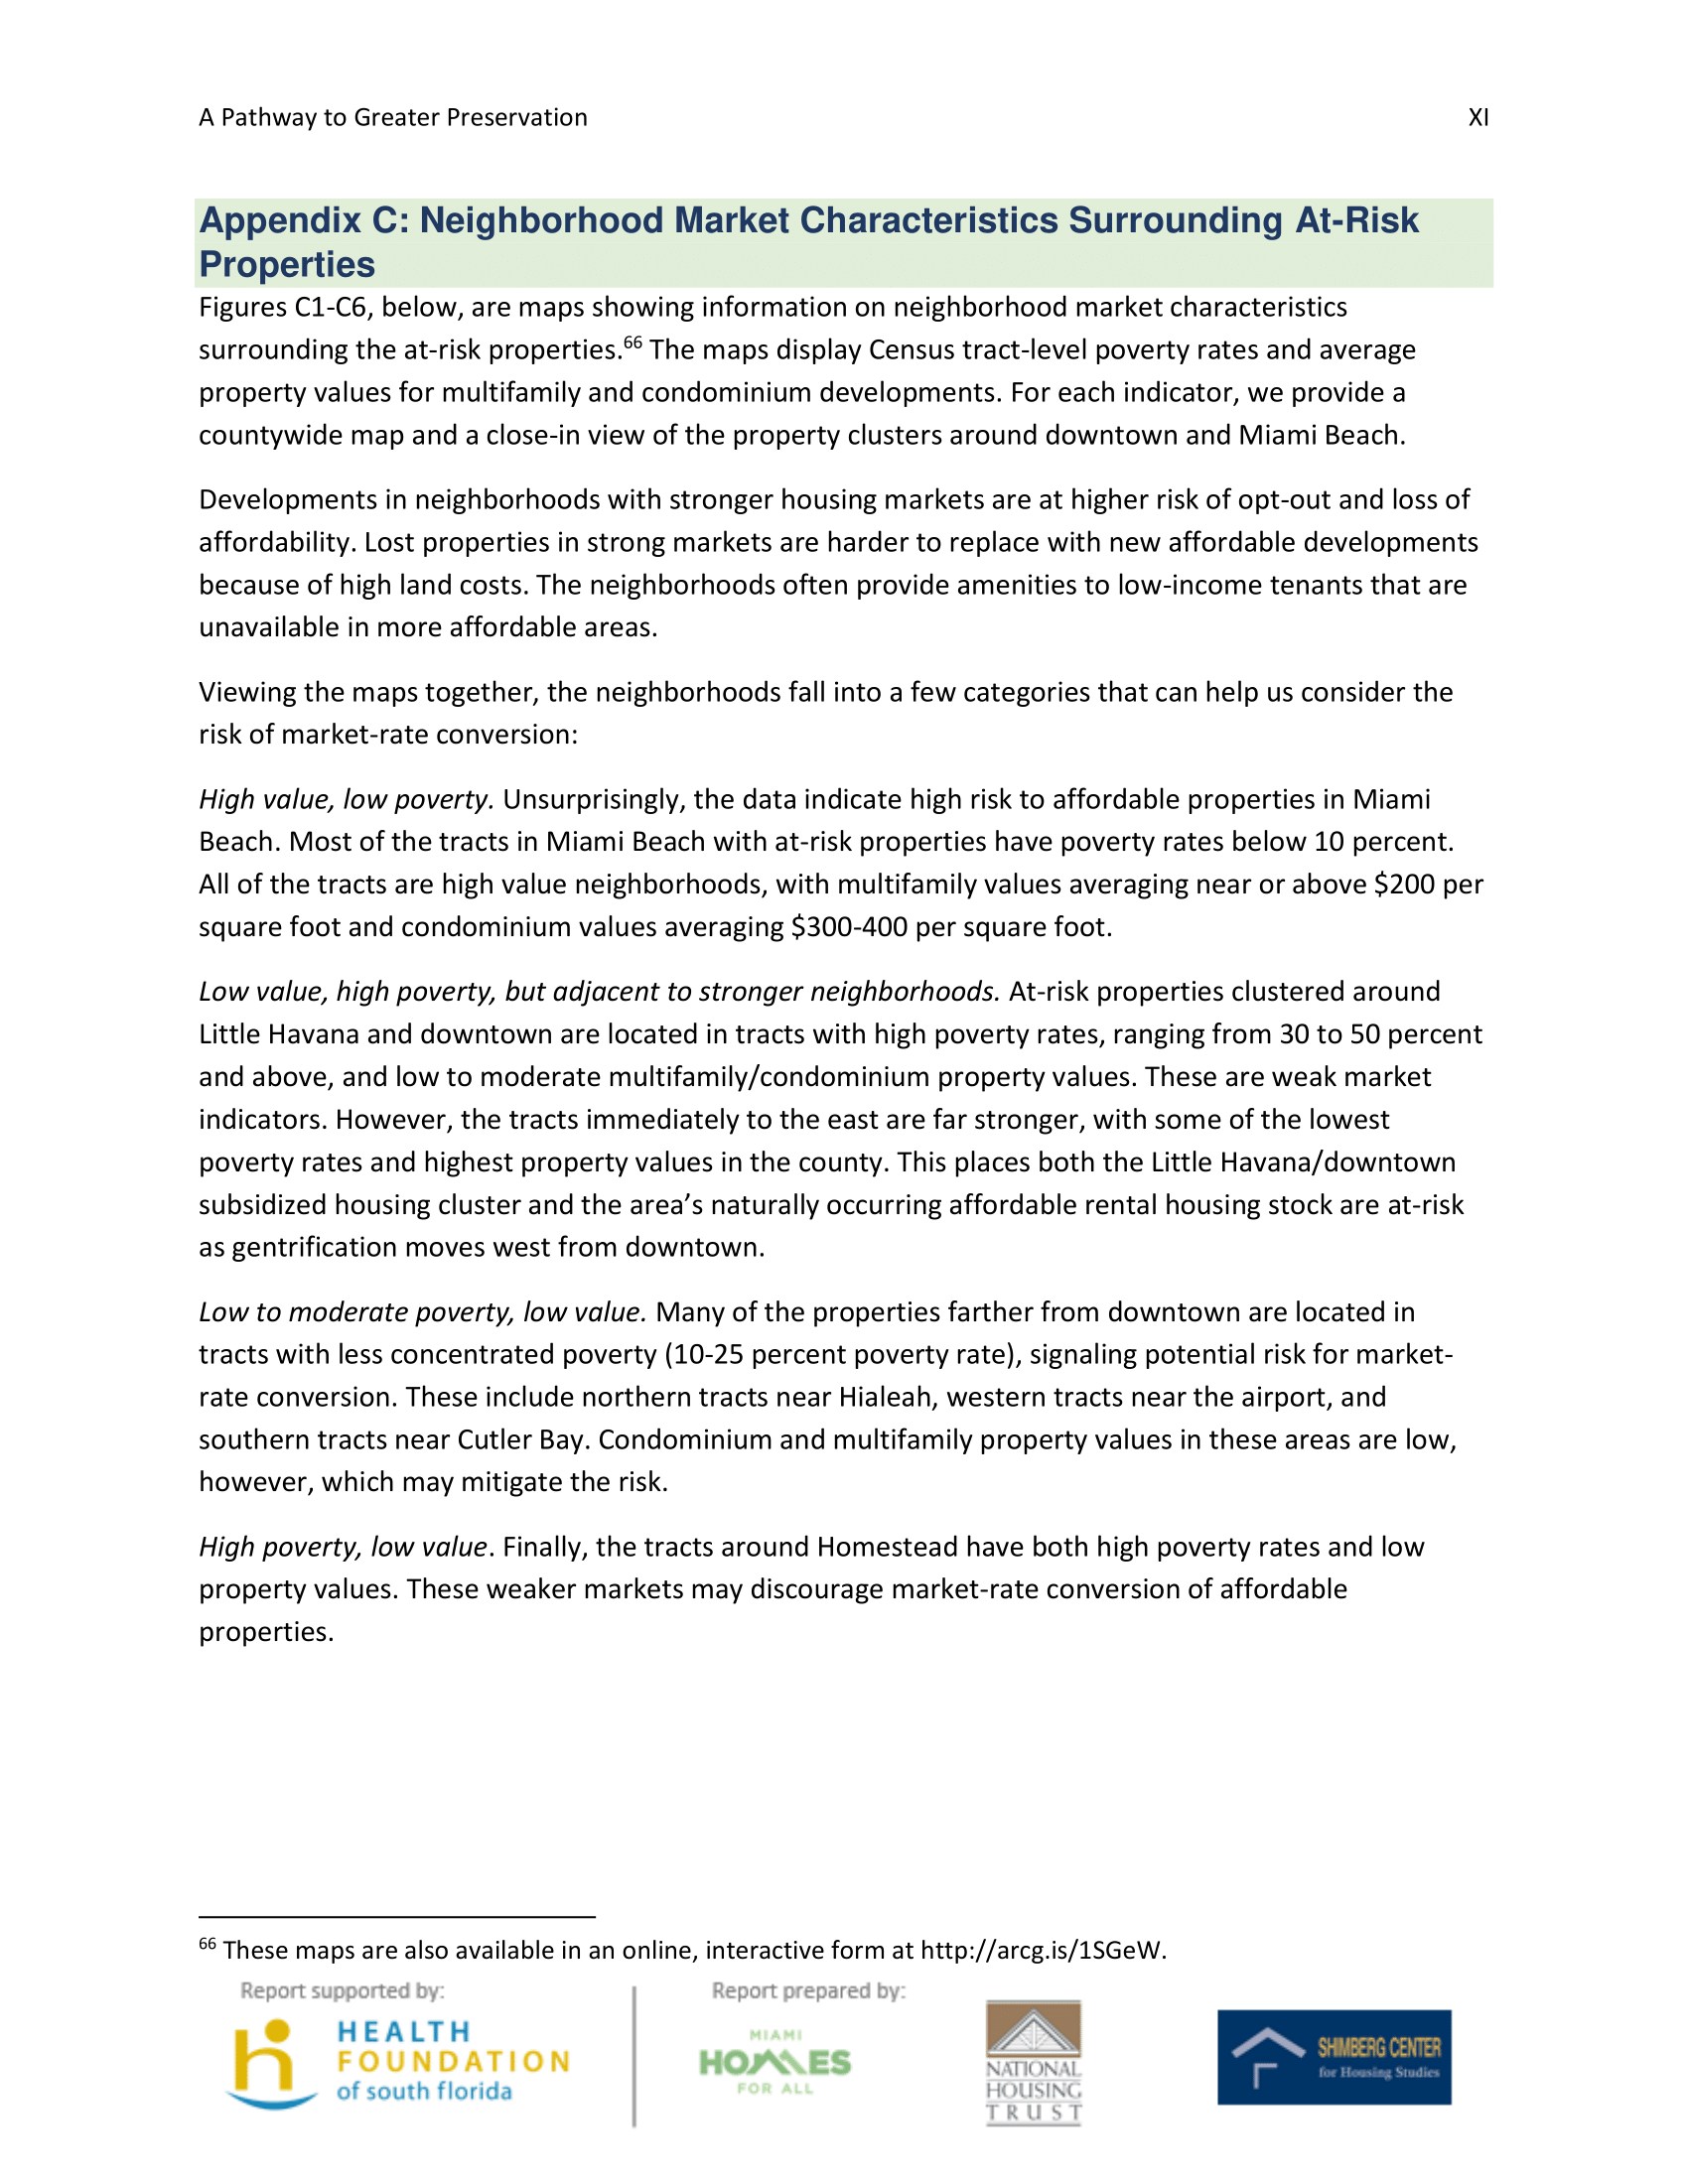 A Pathway to Greater Preservation - February 2018-57.png